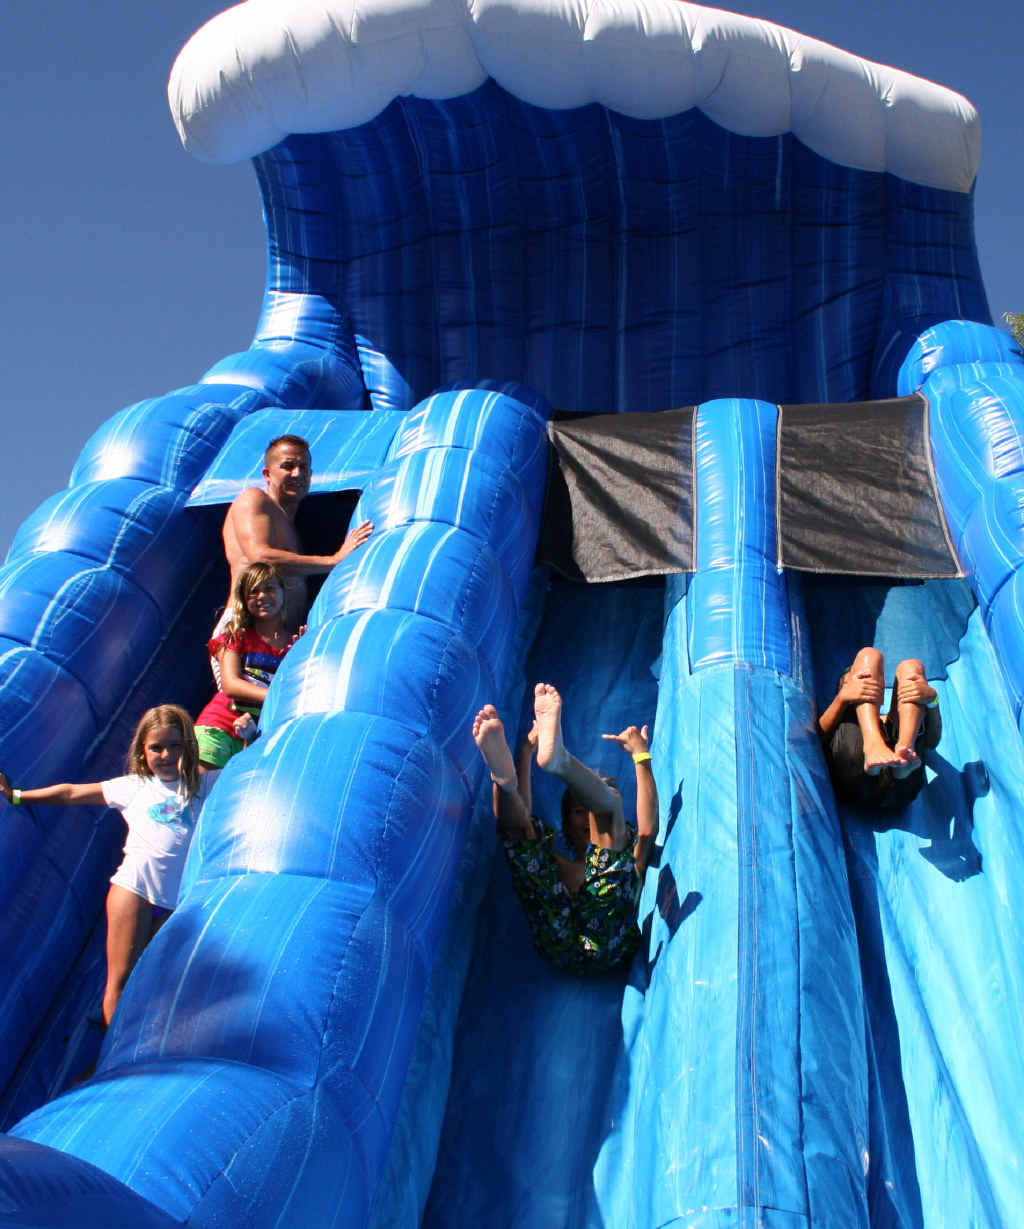 SPLASH DOWN: The Blue Crush Waterslide at Top Shots is the perfect way to keep cool these school holidays.